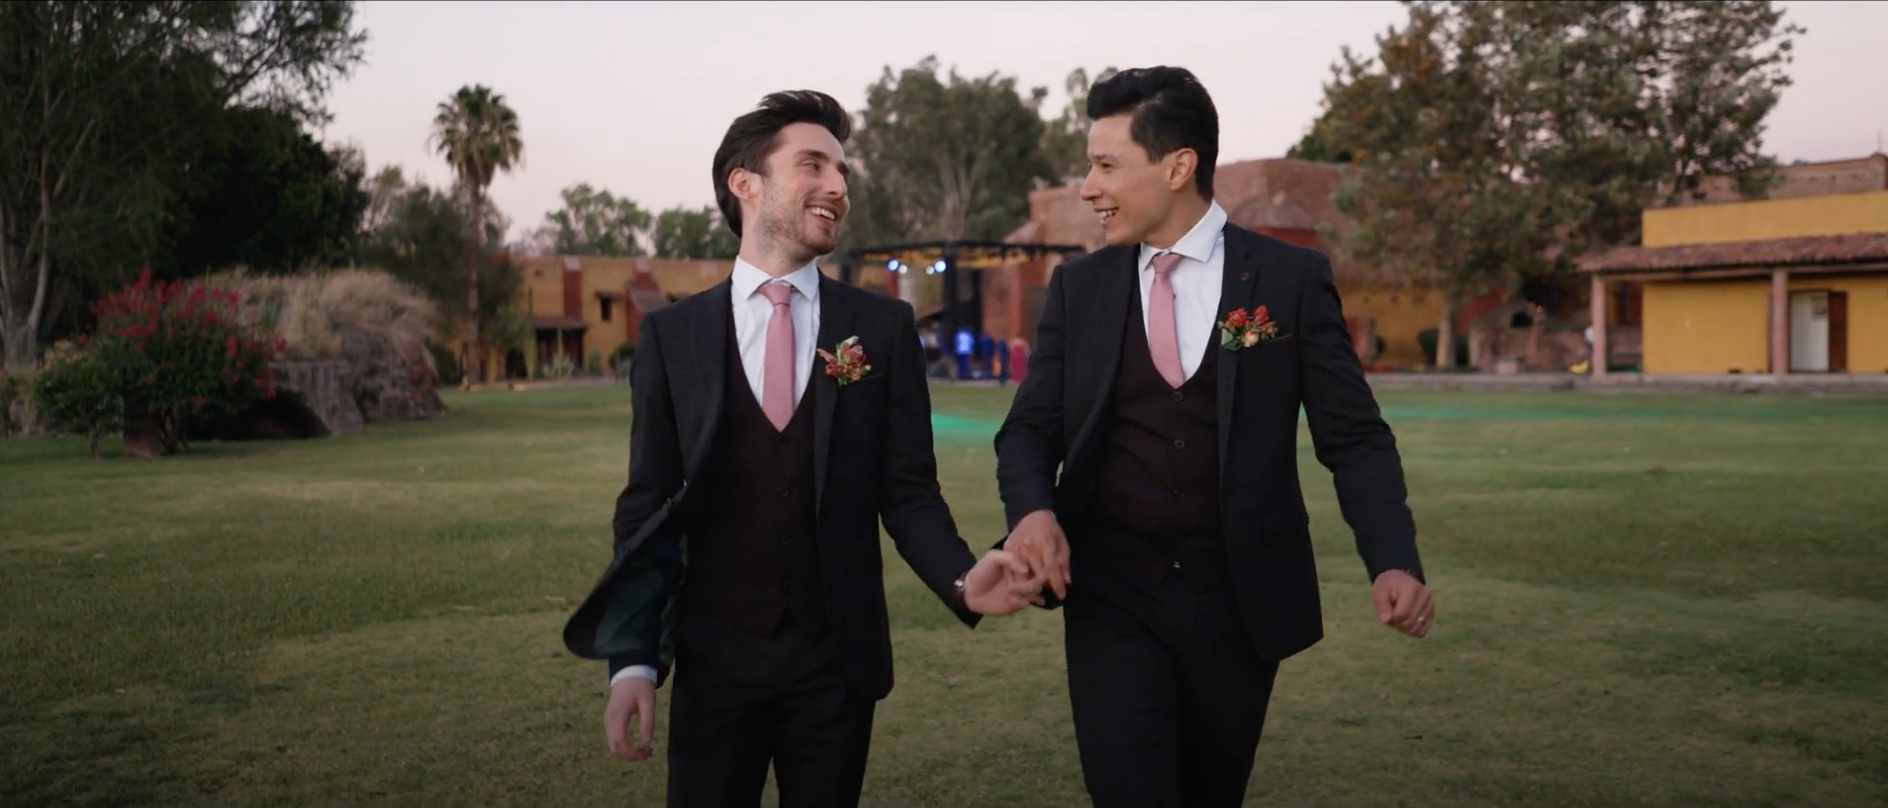 Couple walking and holding hands at romantic, gay Mexican wedding